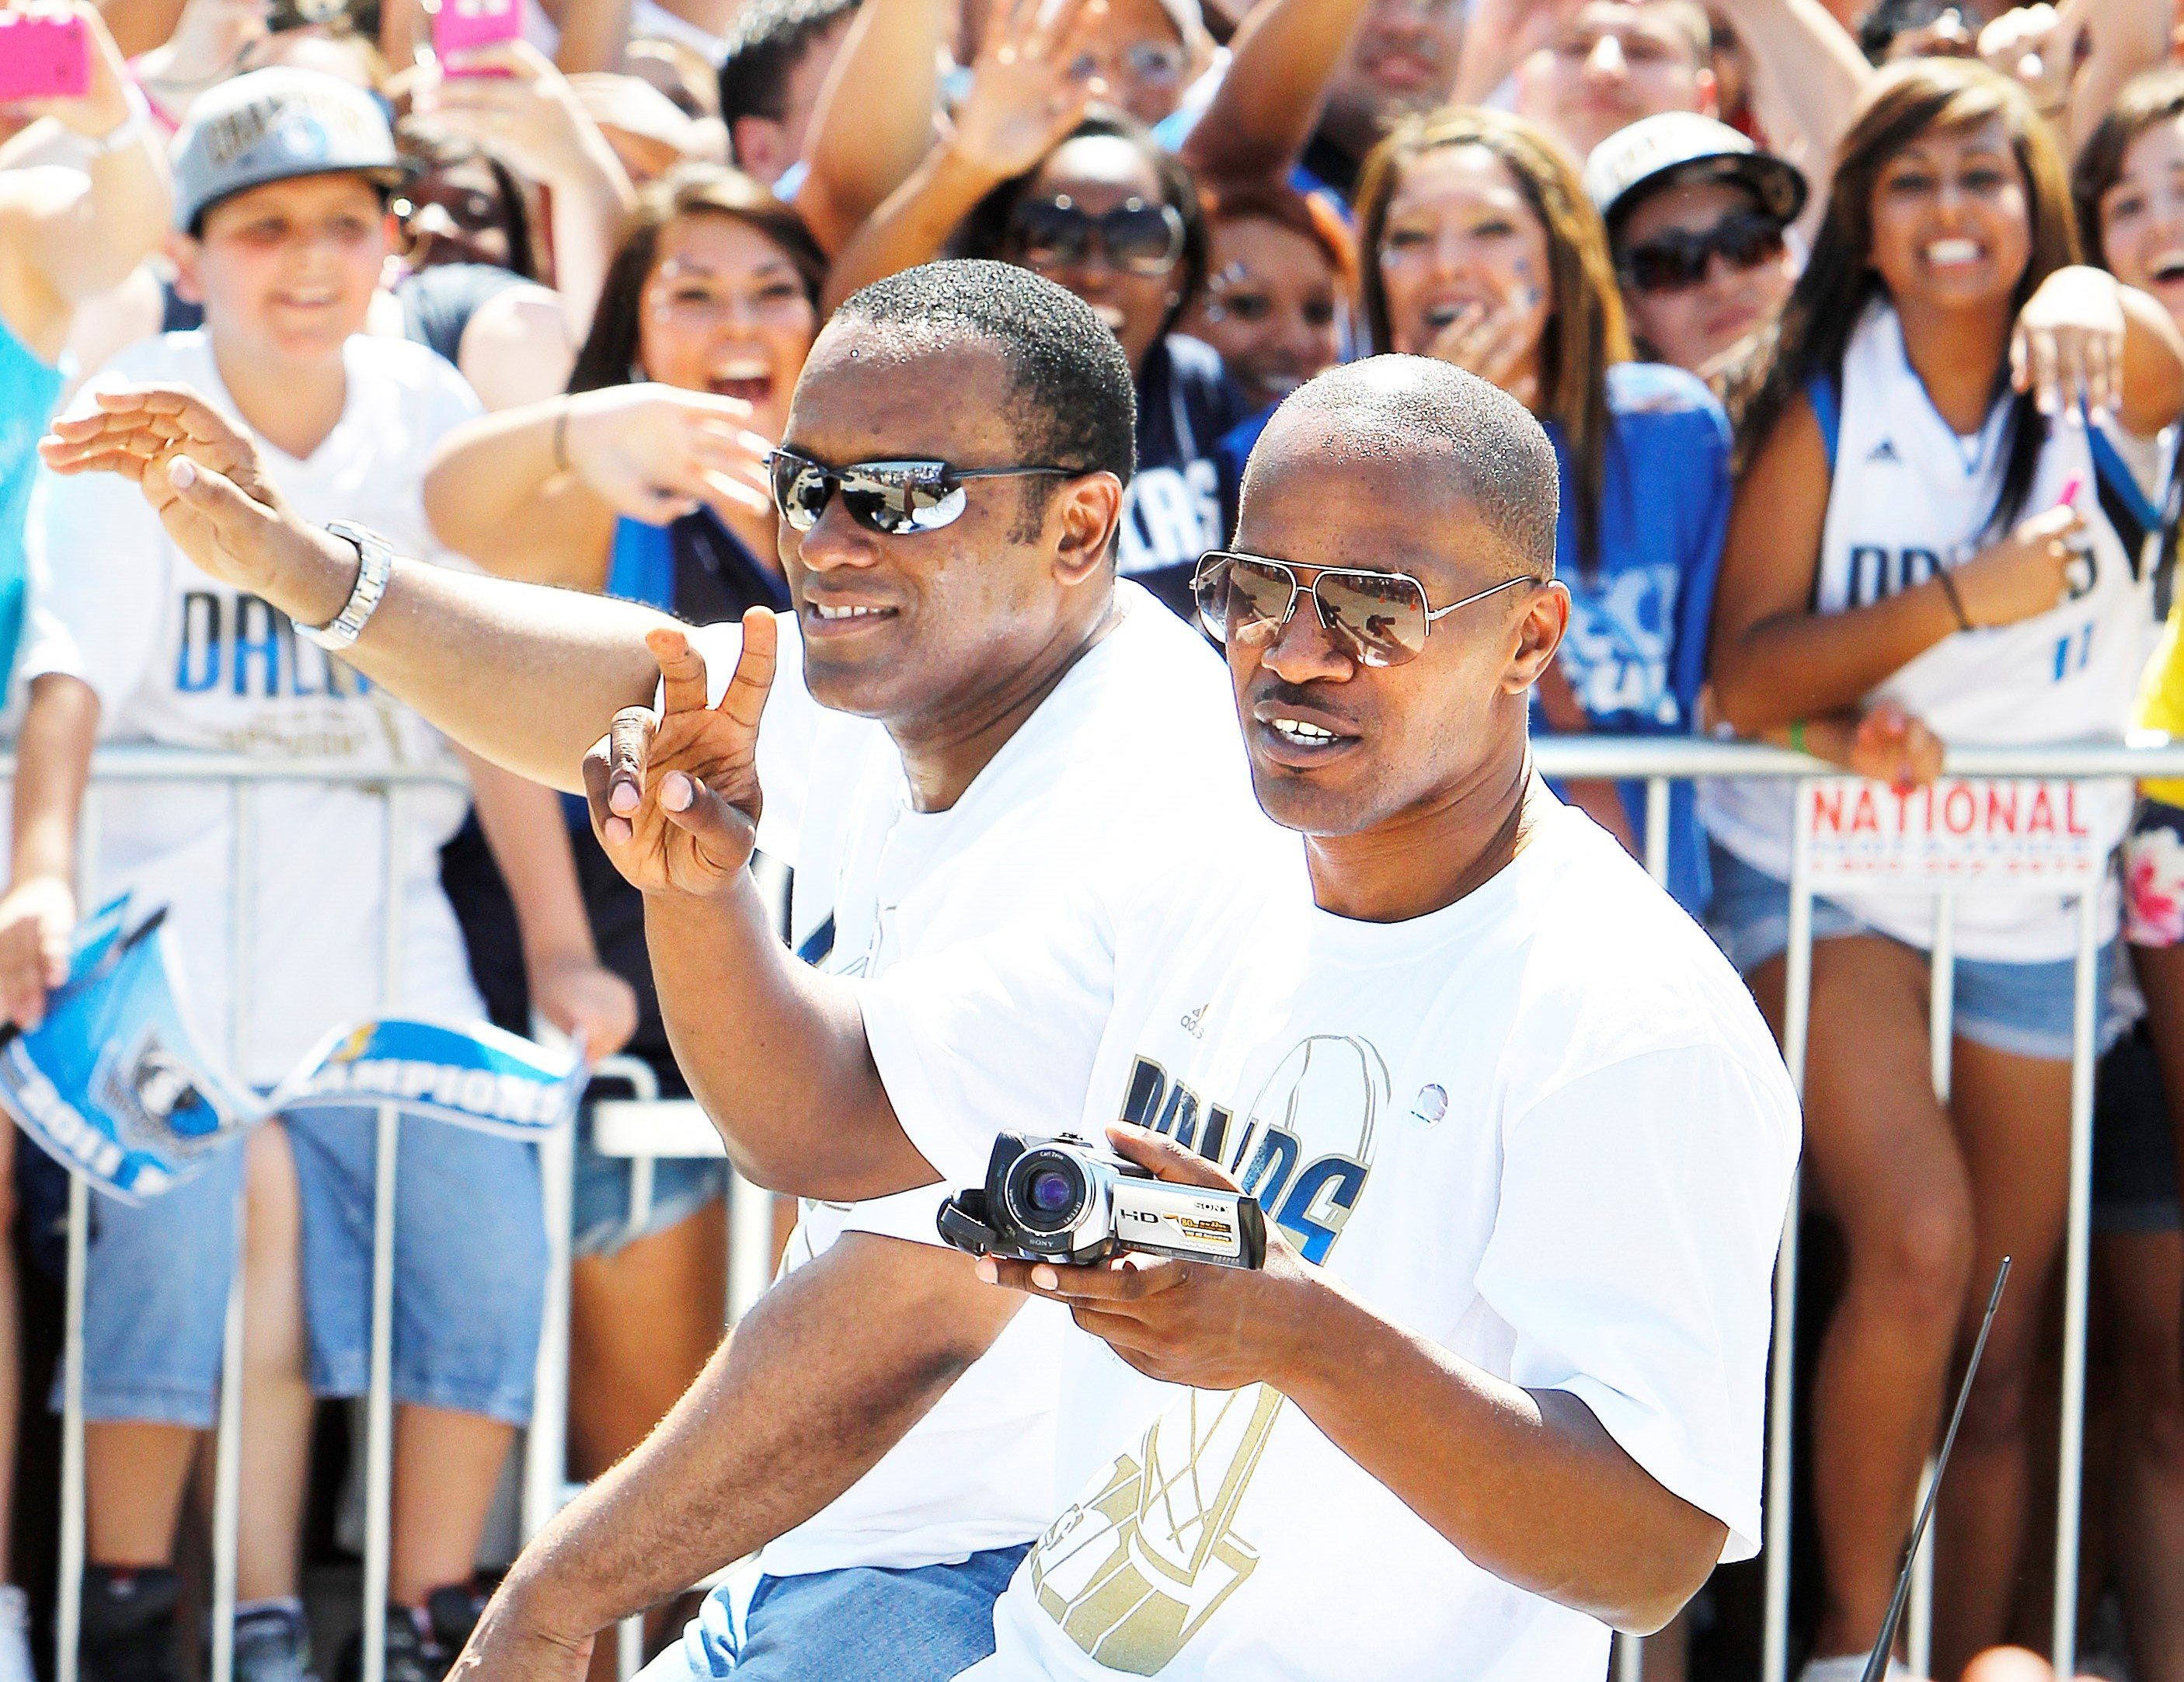 CEO of the Dallas Mavericks Terdema Ussery, left, and actor Jamie Foxx, right, during the Dallas Mavericks Victory Parade